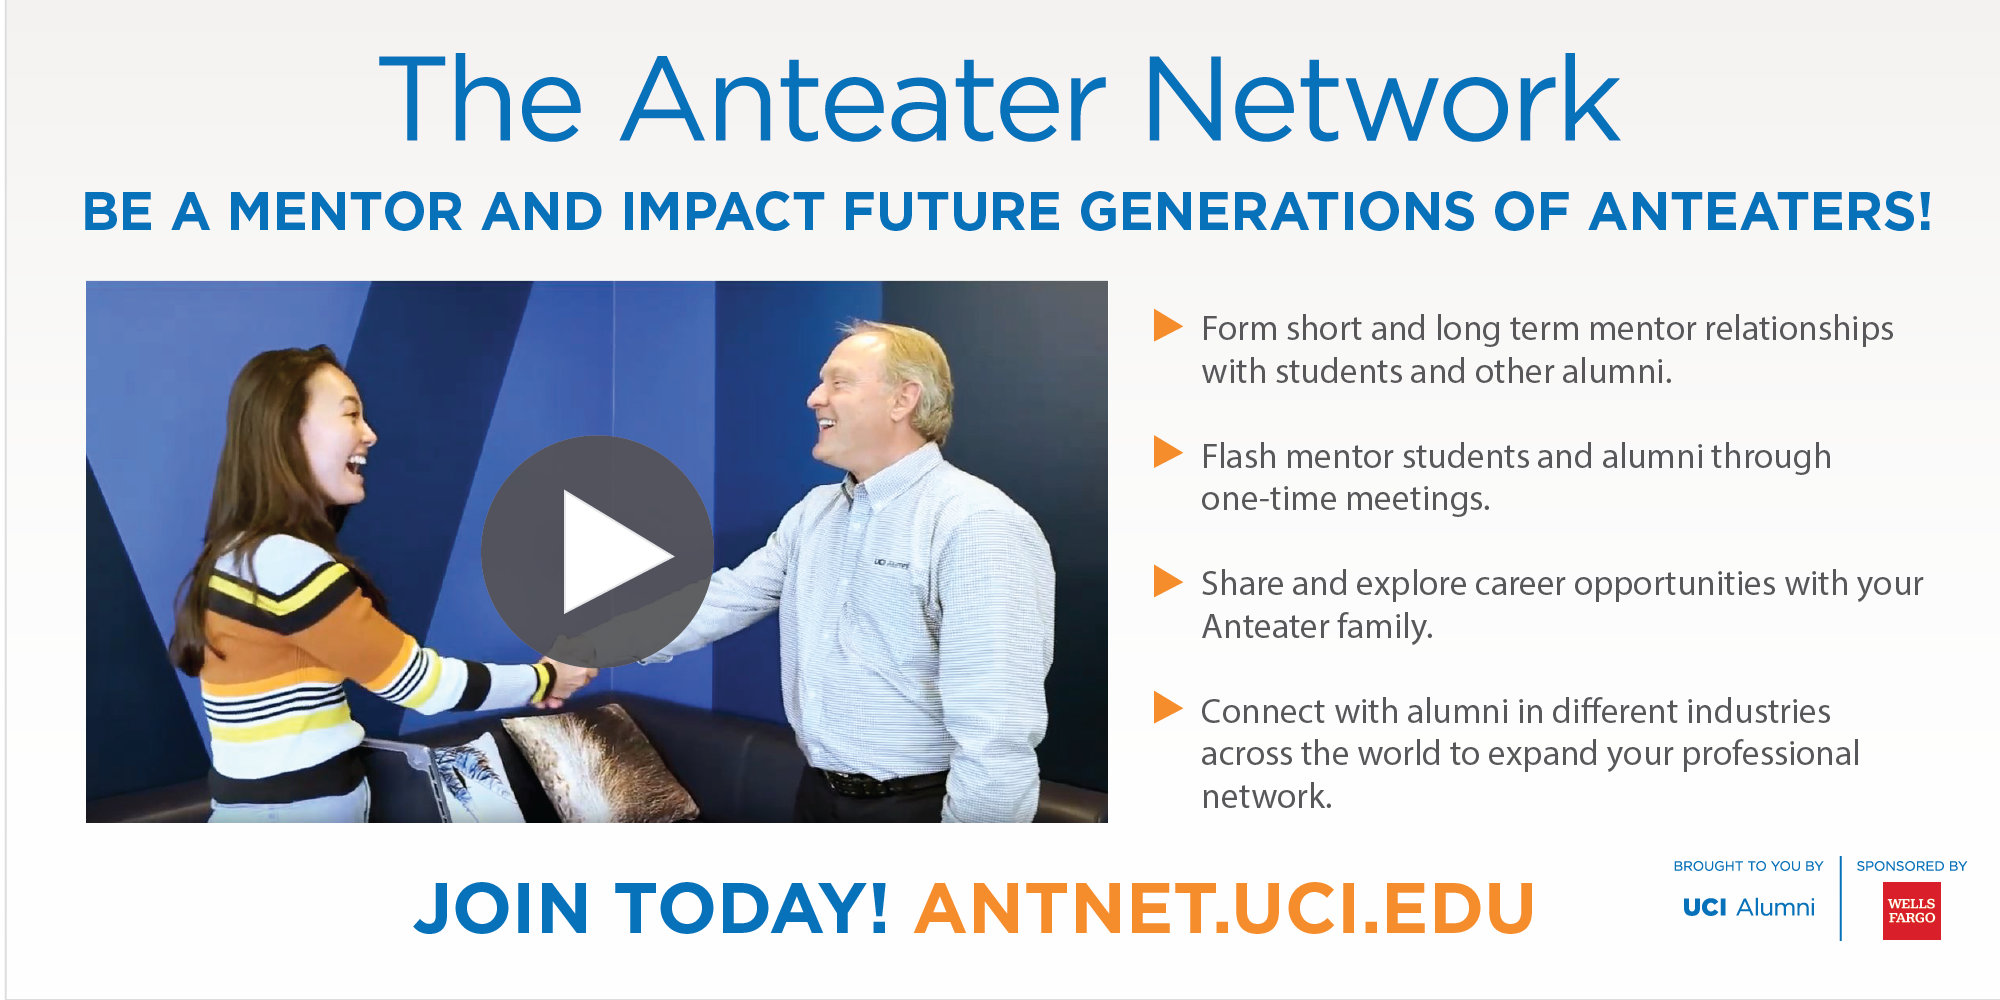 Join The Anteater Network at antnet.uci.edu